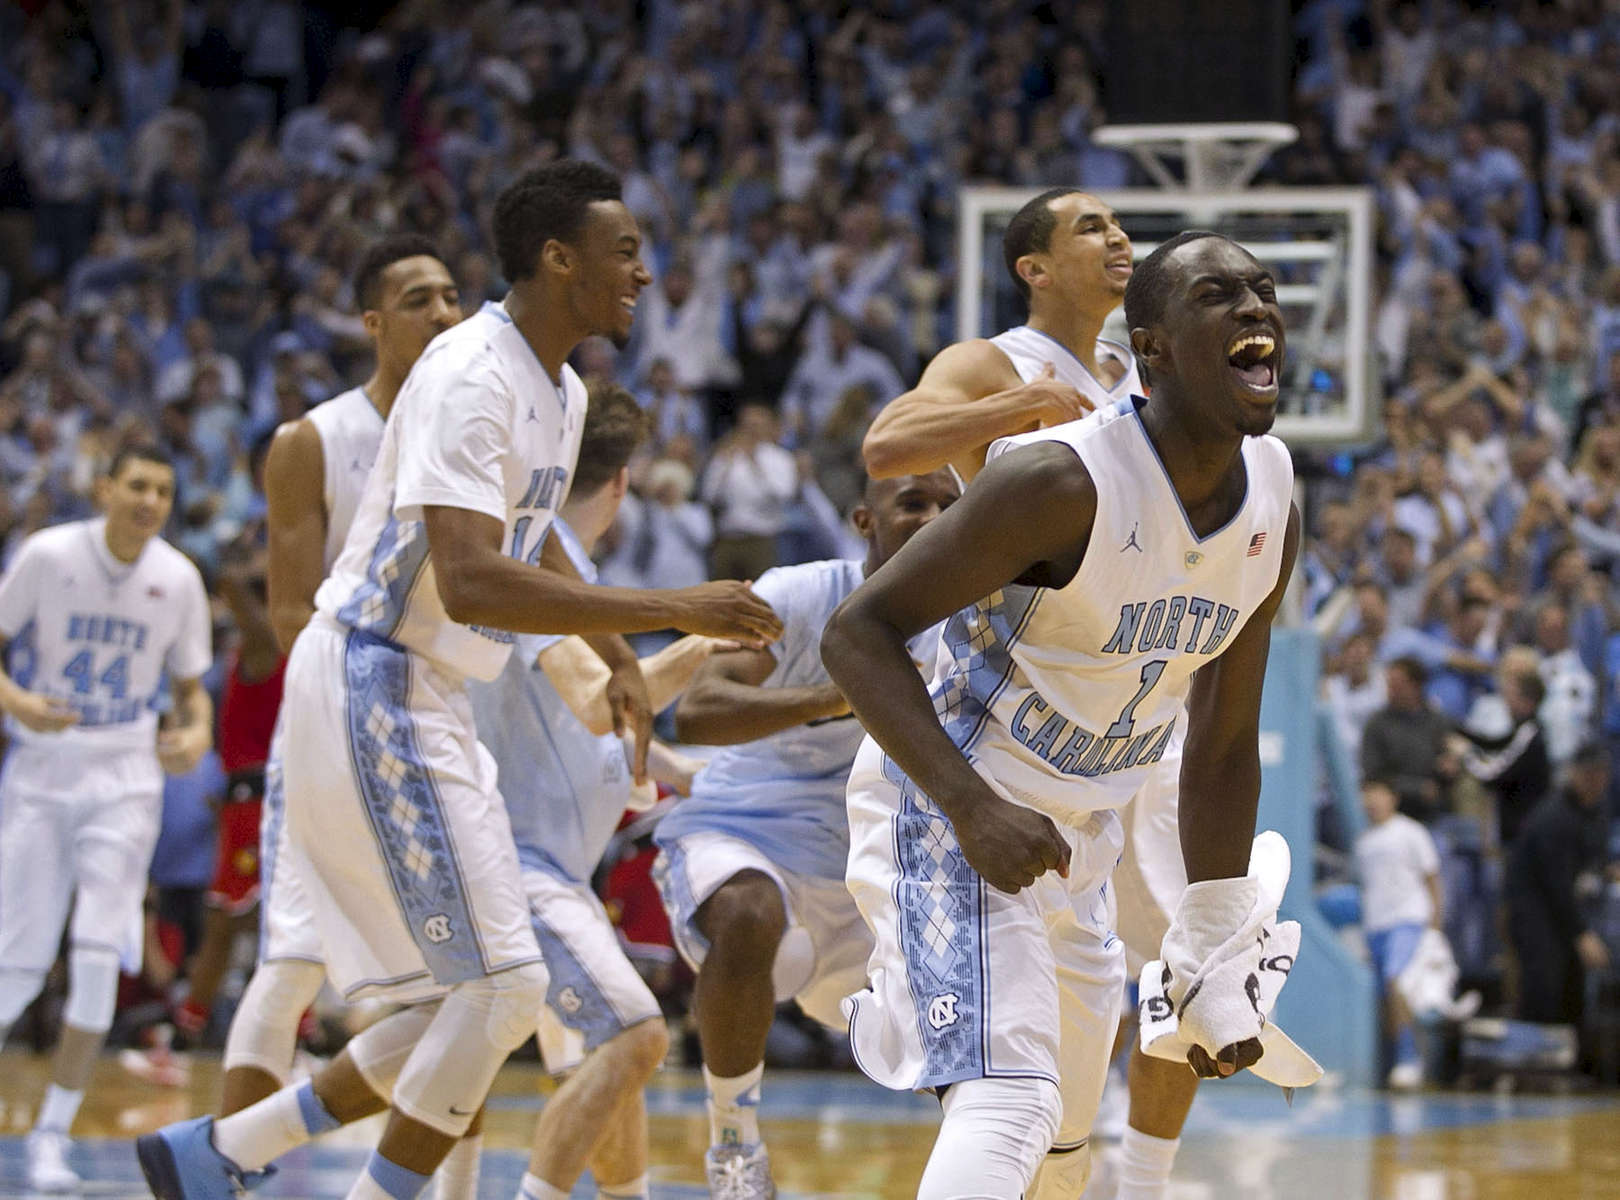 Second Place | SportsRobert Willett, News & Observer UNC's Theo Pinson (1) celebrates the Tar Heels' 72-71 victory with his teammates on Saturday, January 10, 2015 at the Smith Center in Chapel Hill, N.C.